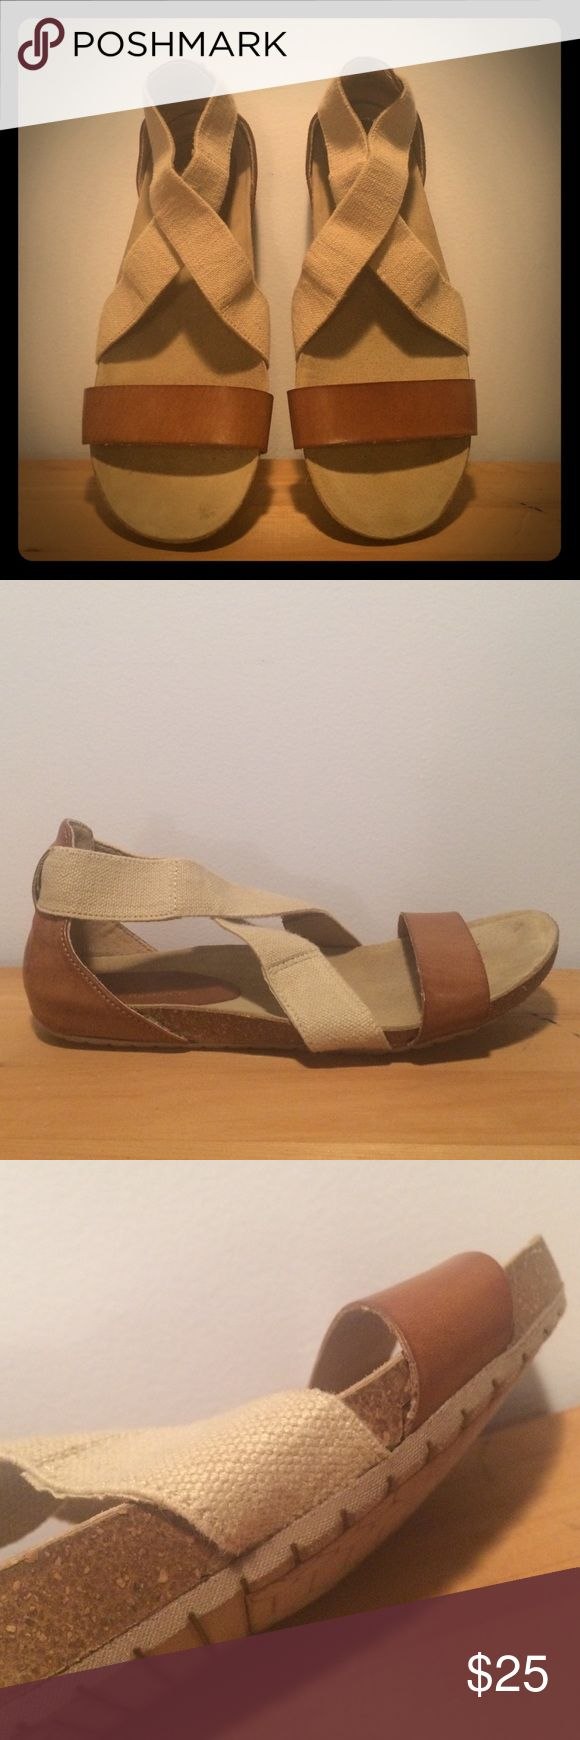 G.H. Bass & Co Classic Sandals Classic sandals made of leather and canvas. Will match with all you favorite summer sundresses. Very comfortable! Bass & Co. Shoes Sandals